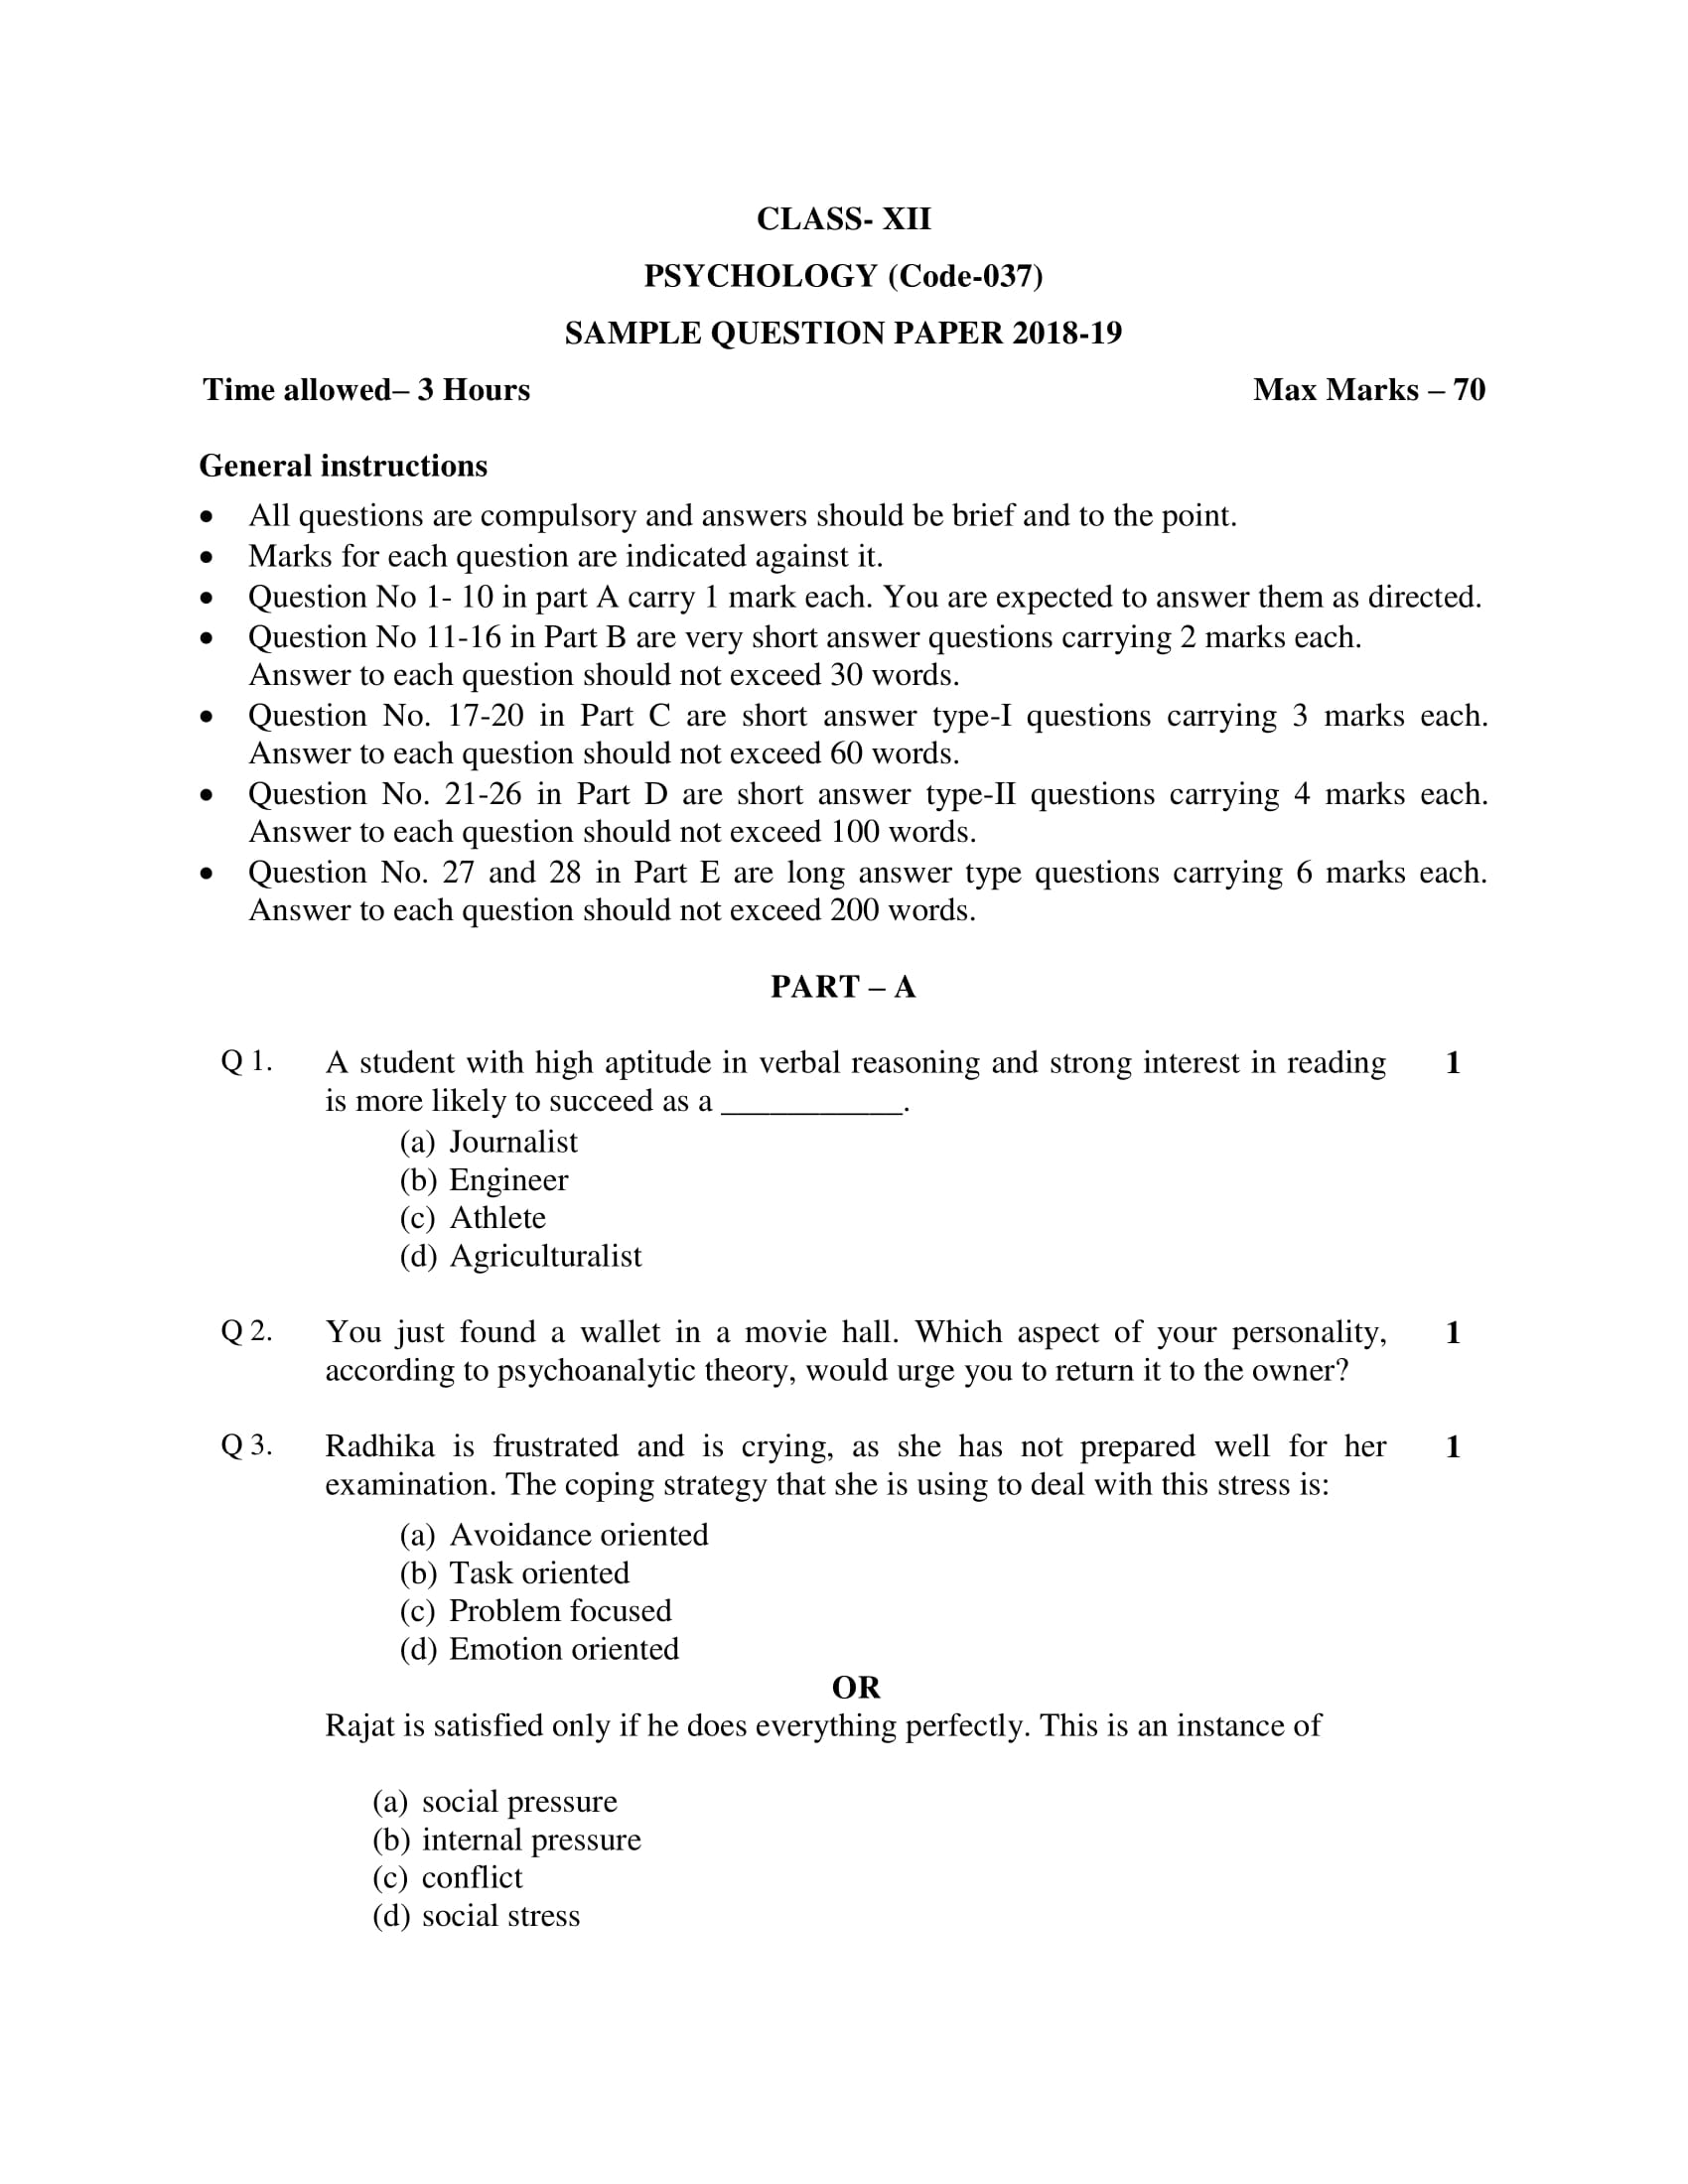 Psychology Class 12 CBSE Solved Papers For Boards 2019 with Answers, Marking Scheme PDF Download